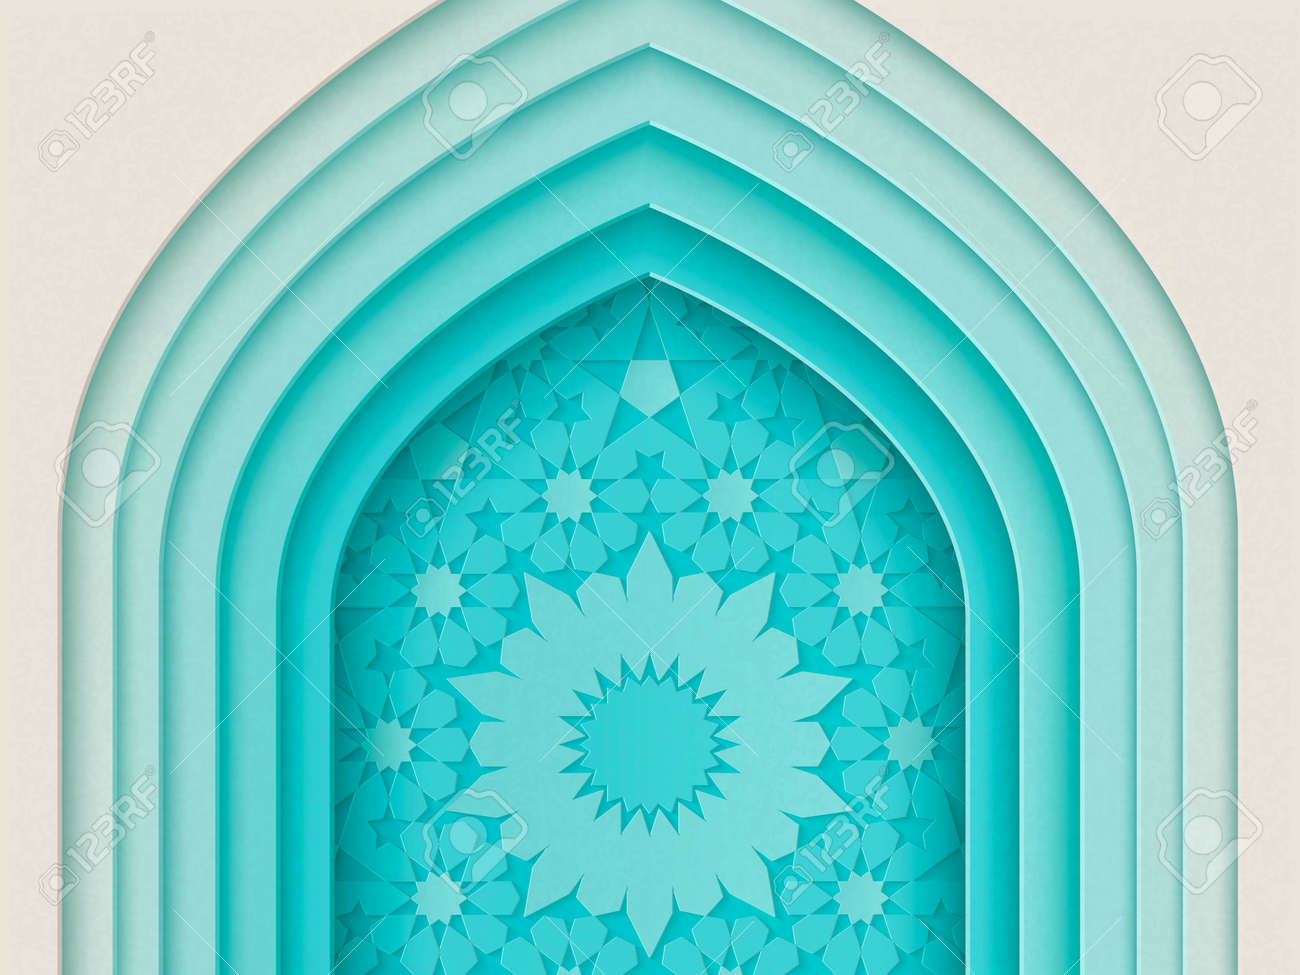 Islamic festival design with multi layers arch background in